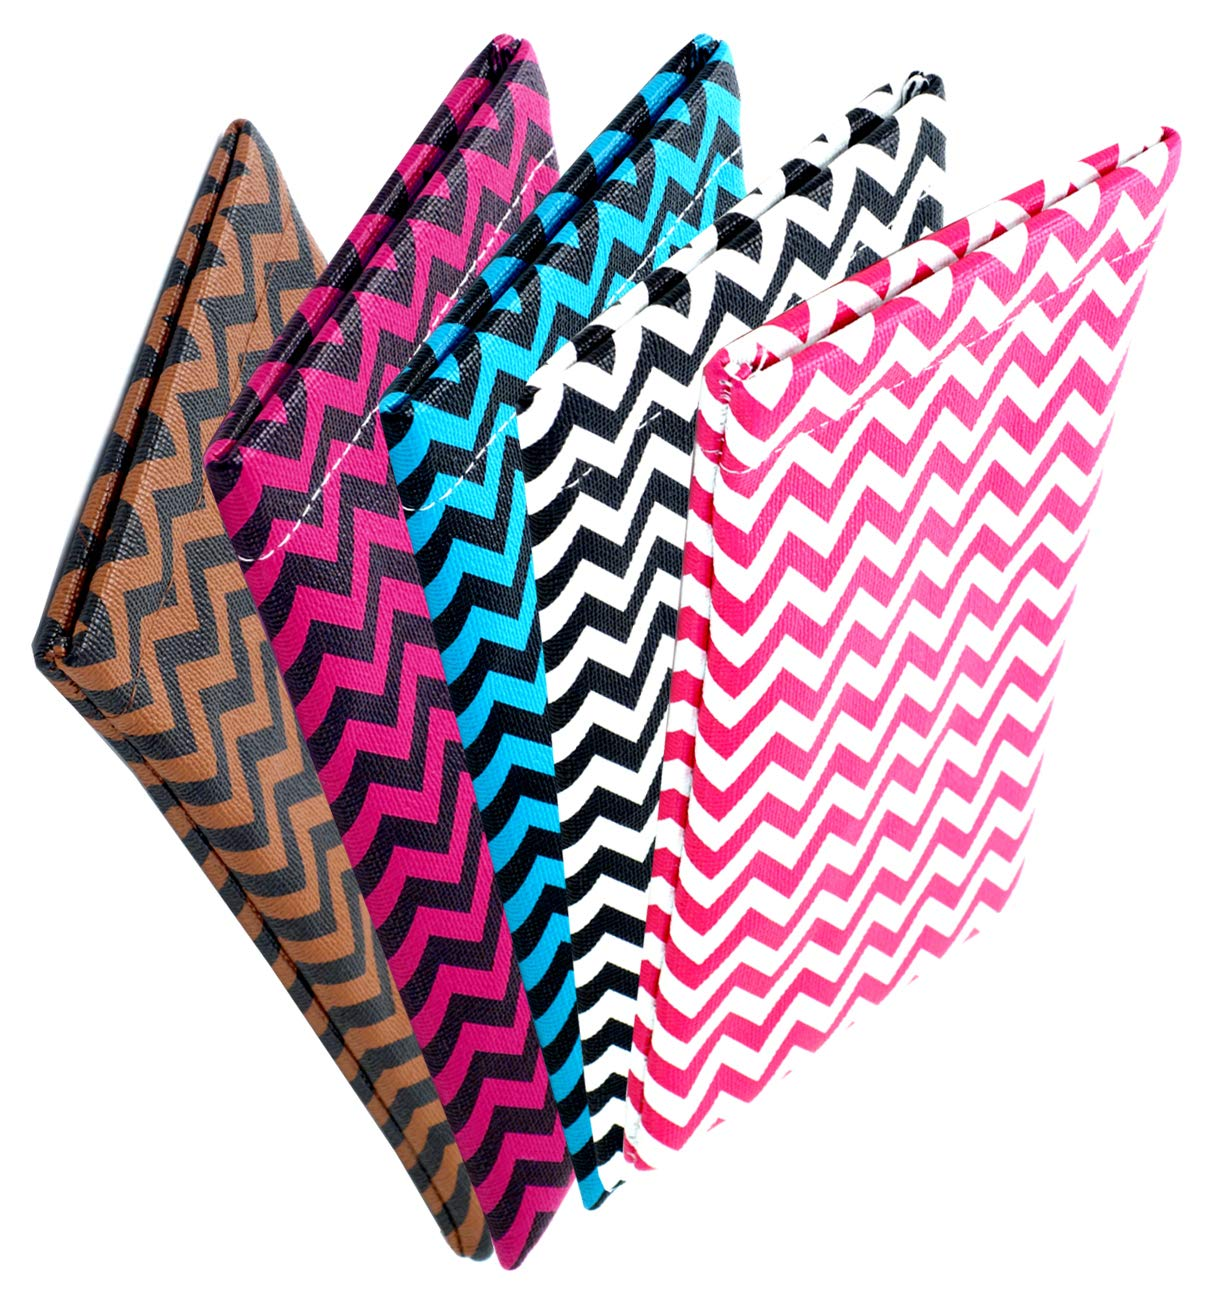 Soft Squeeze Top Slip In Eyeglasses Case And Holder, Chevron Design (5pack)